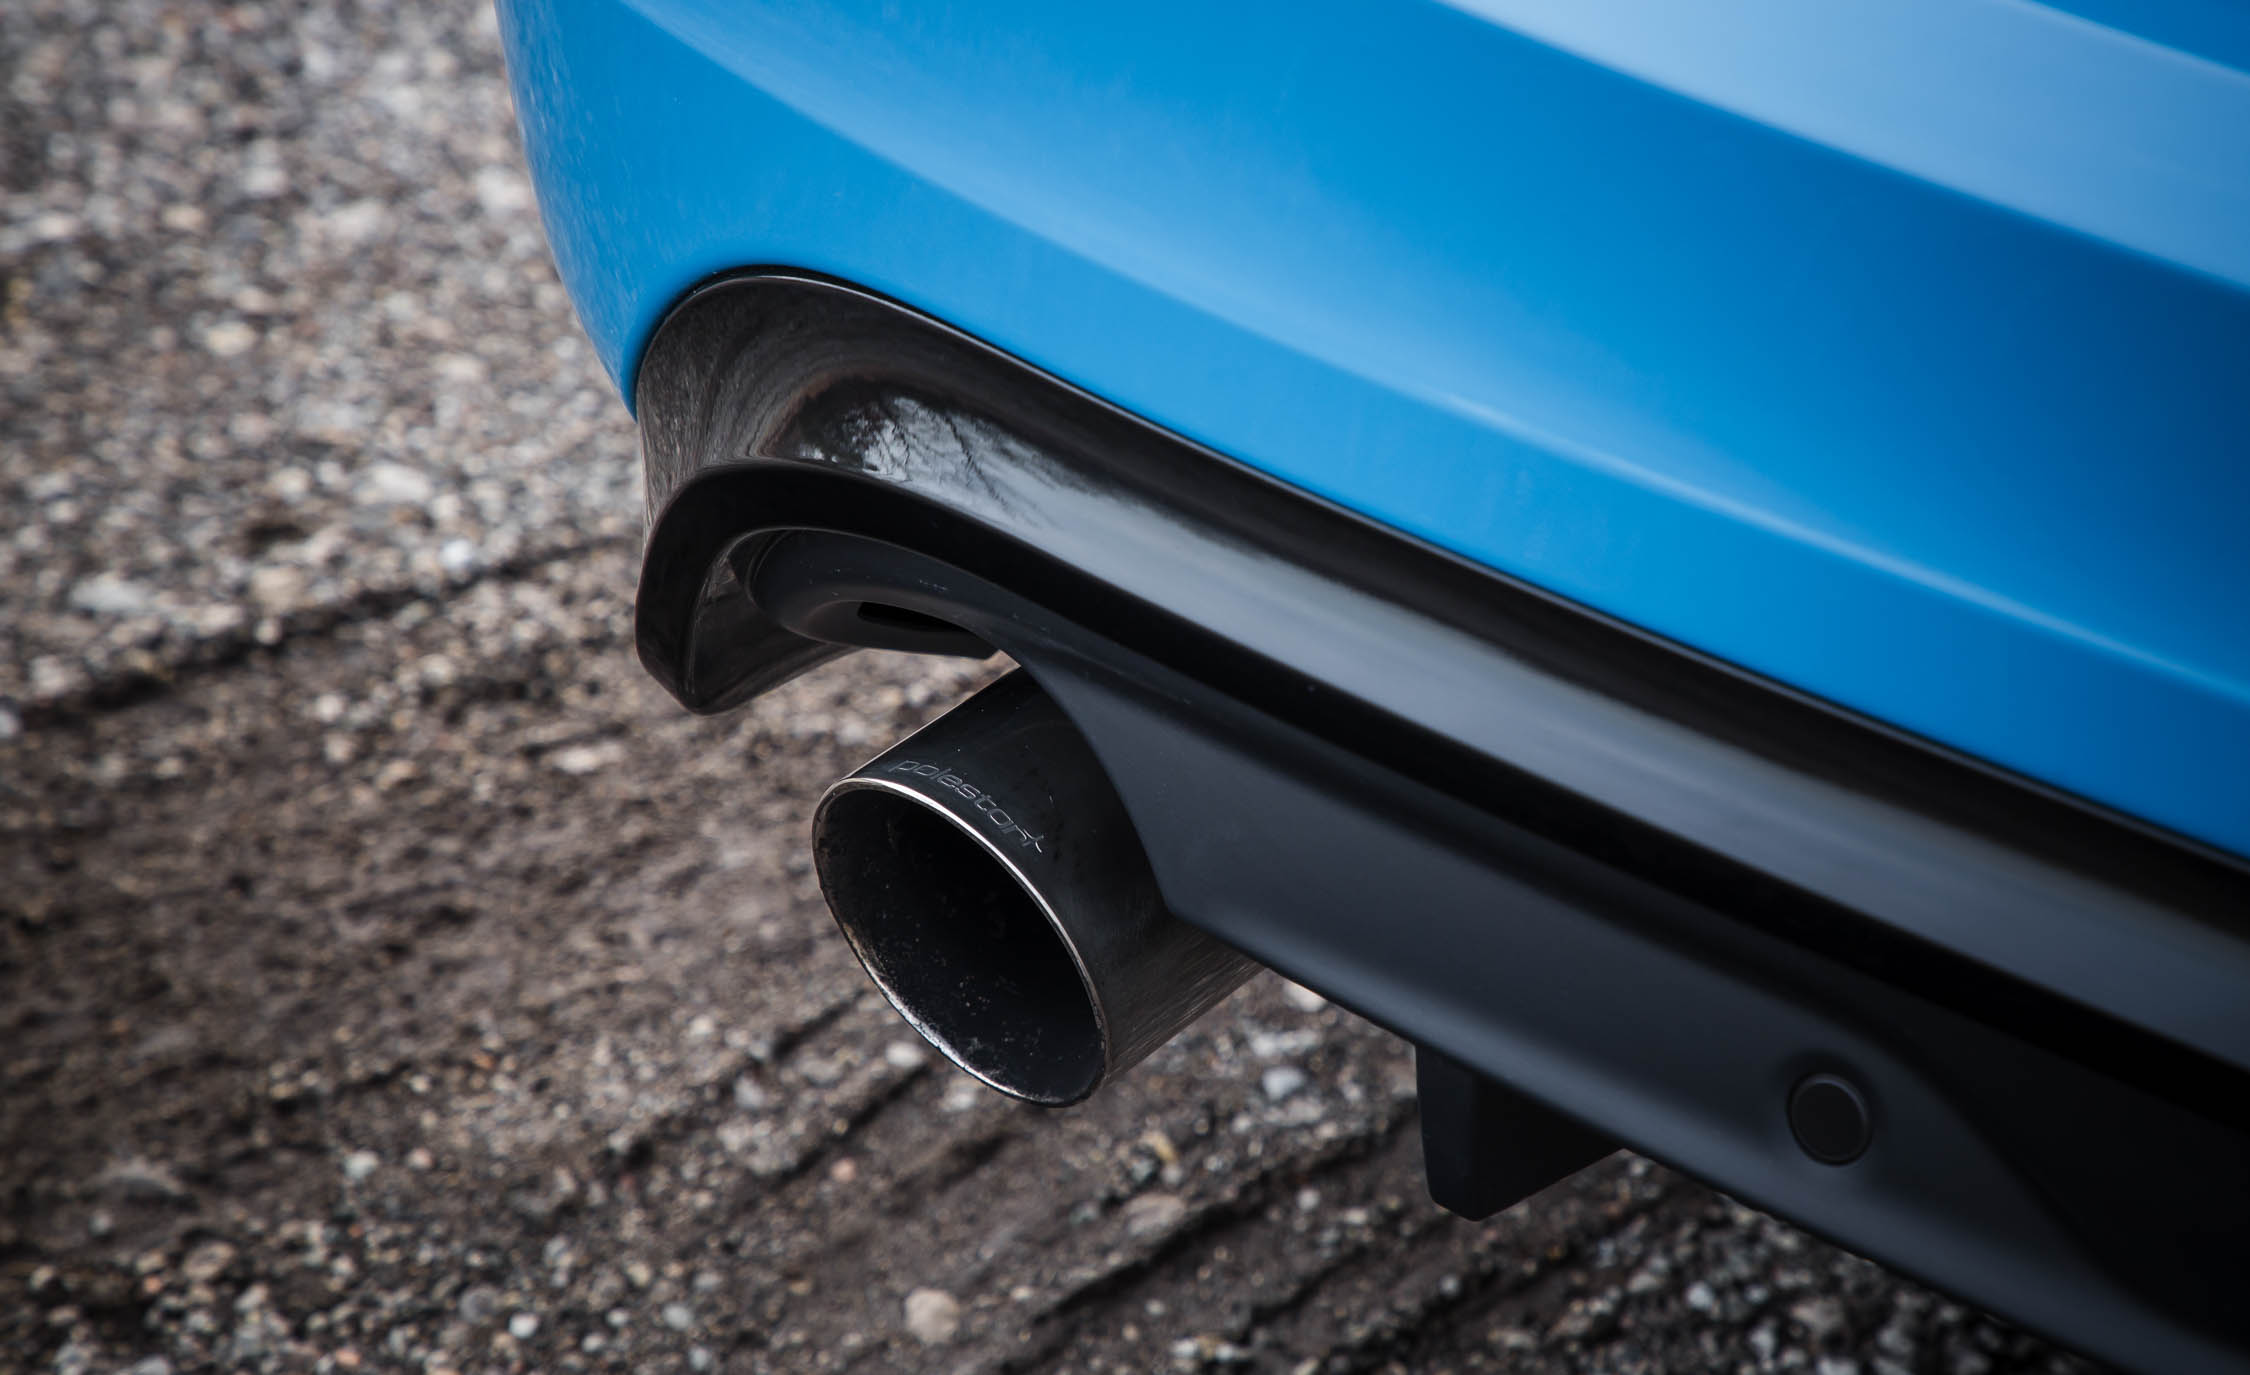 2017 Volvo V60 Polestar Exterior View Exhaust Pipe (Photo 6 of 53)